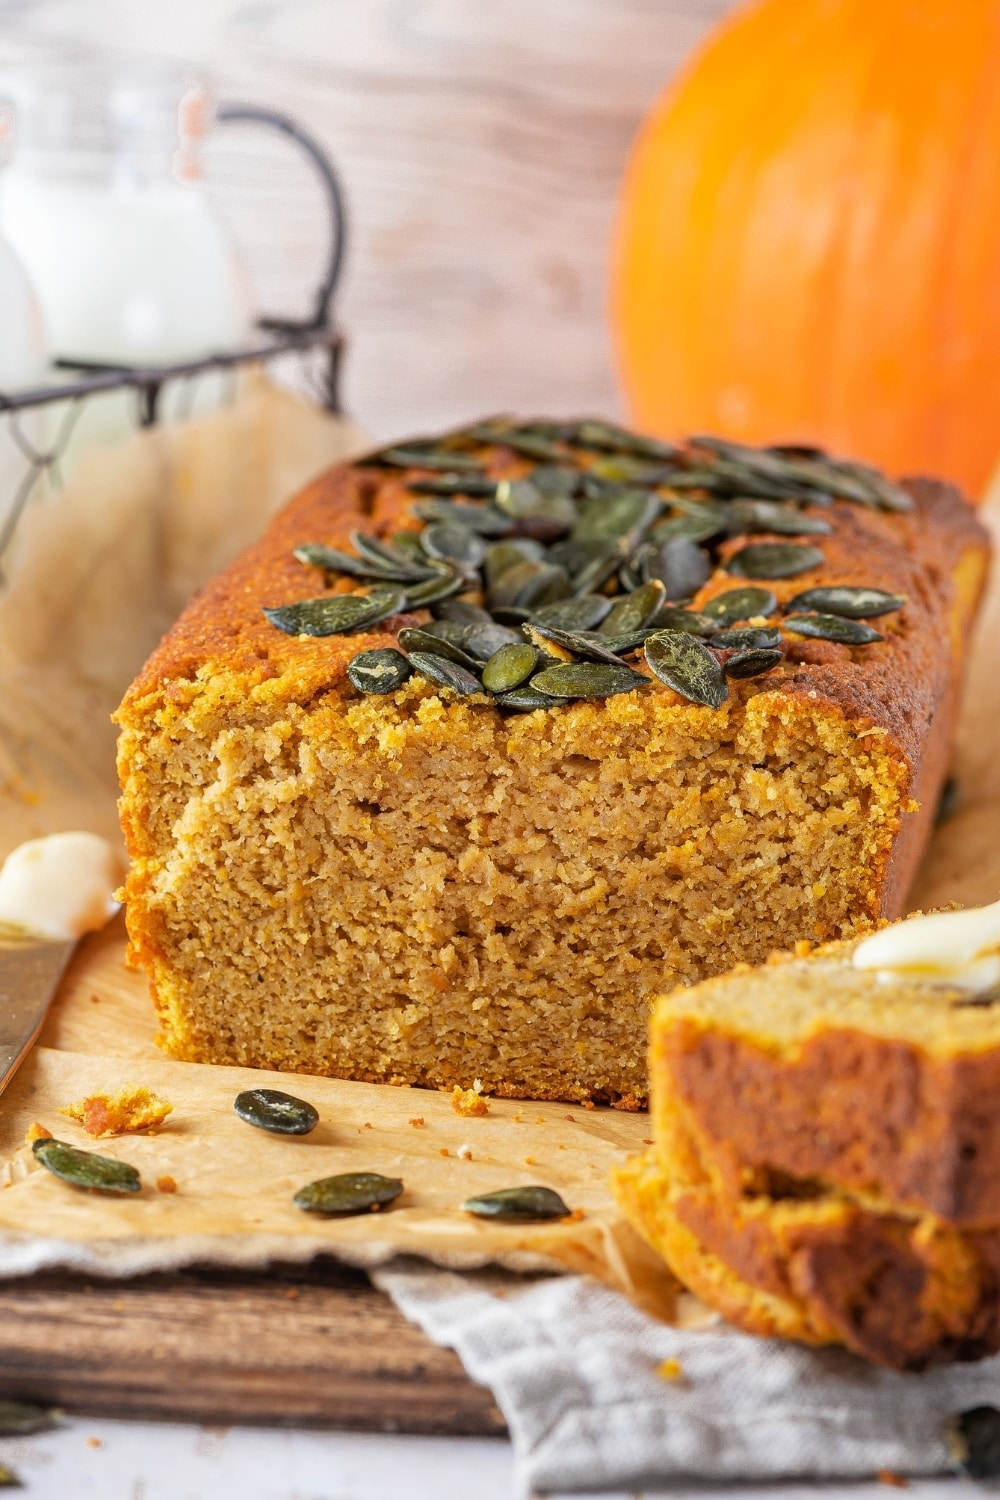 A pumpkin bread loaf on a piece of parchment paper on a wood board. There is part of two slices from the bread in front of it and there is part of a pumpkin behind it.